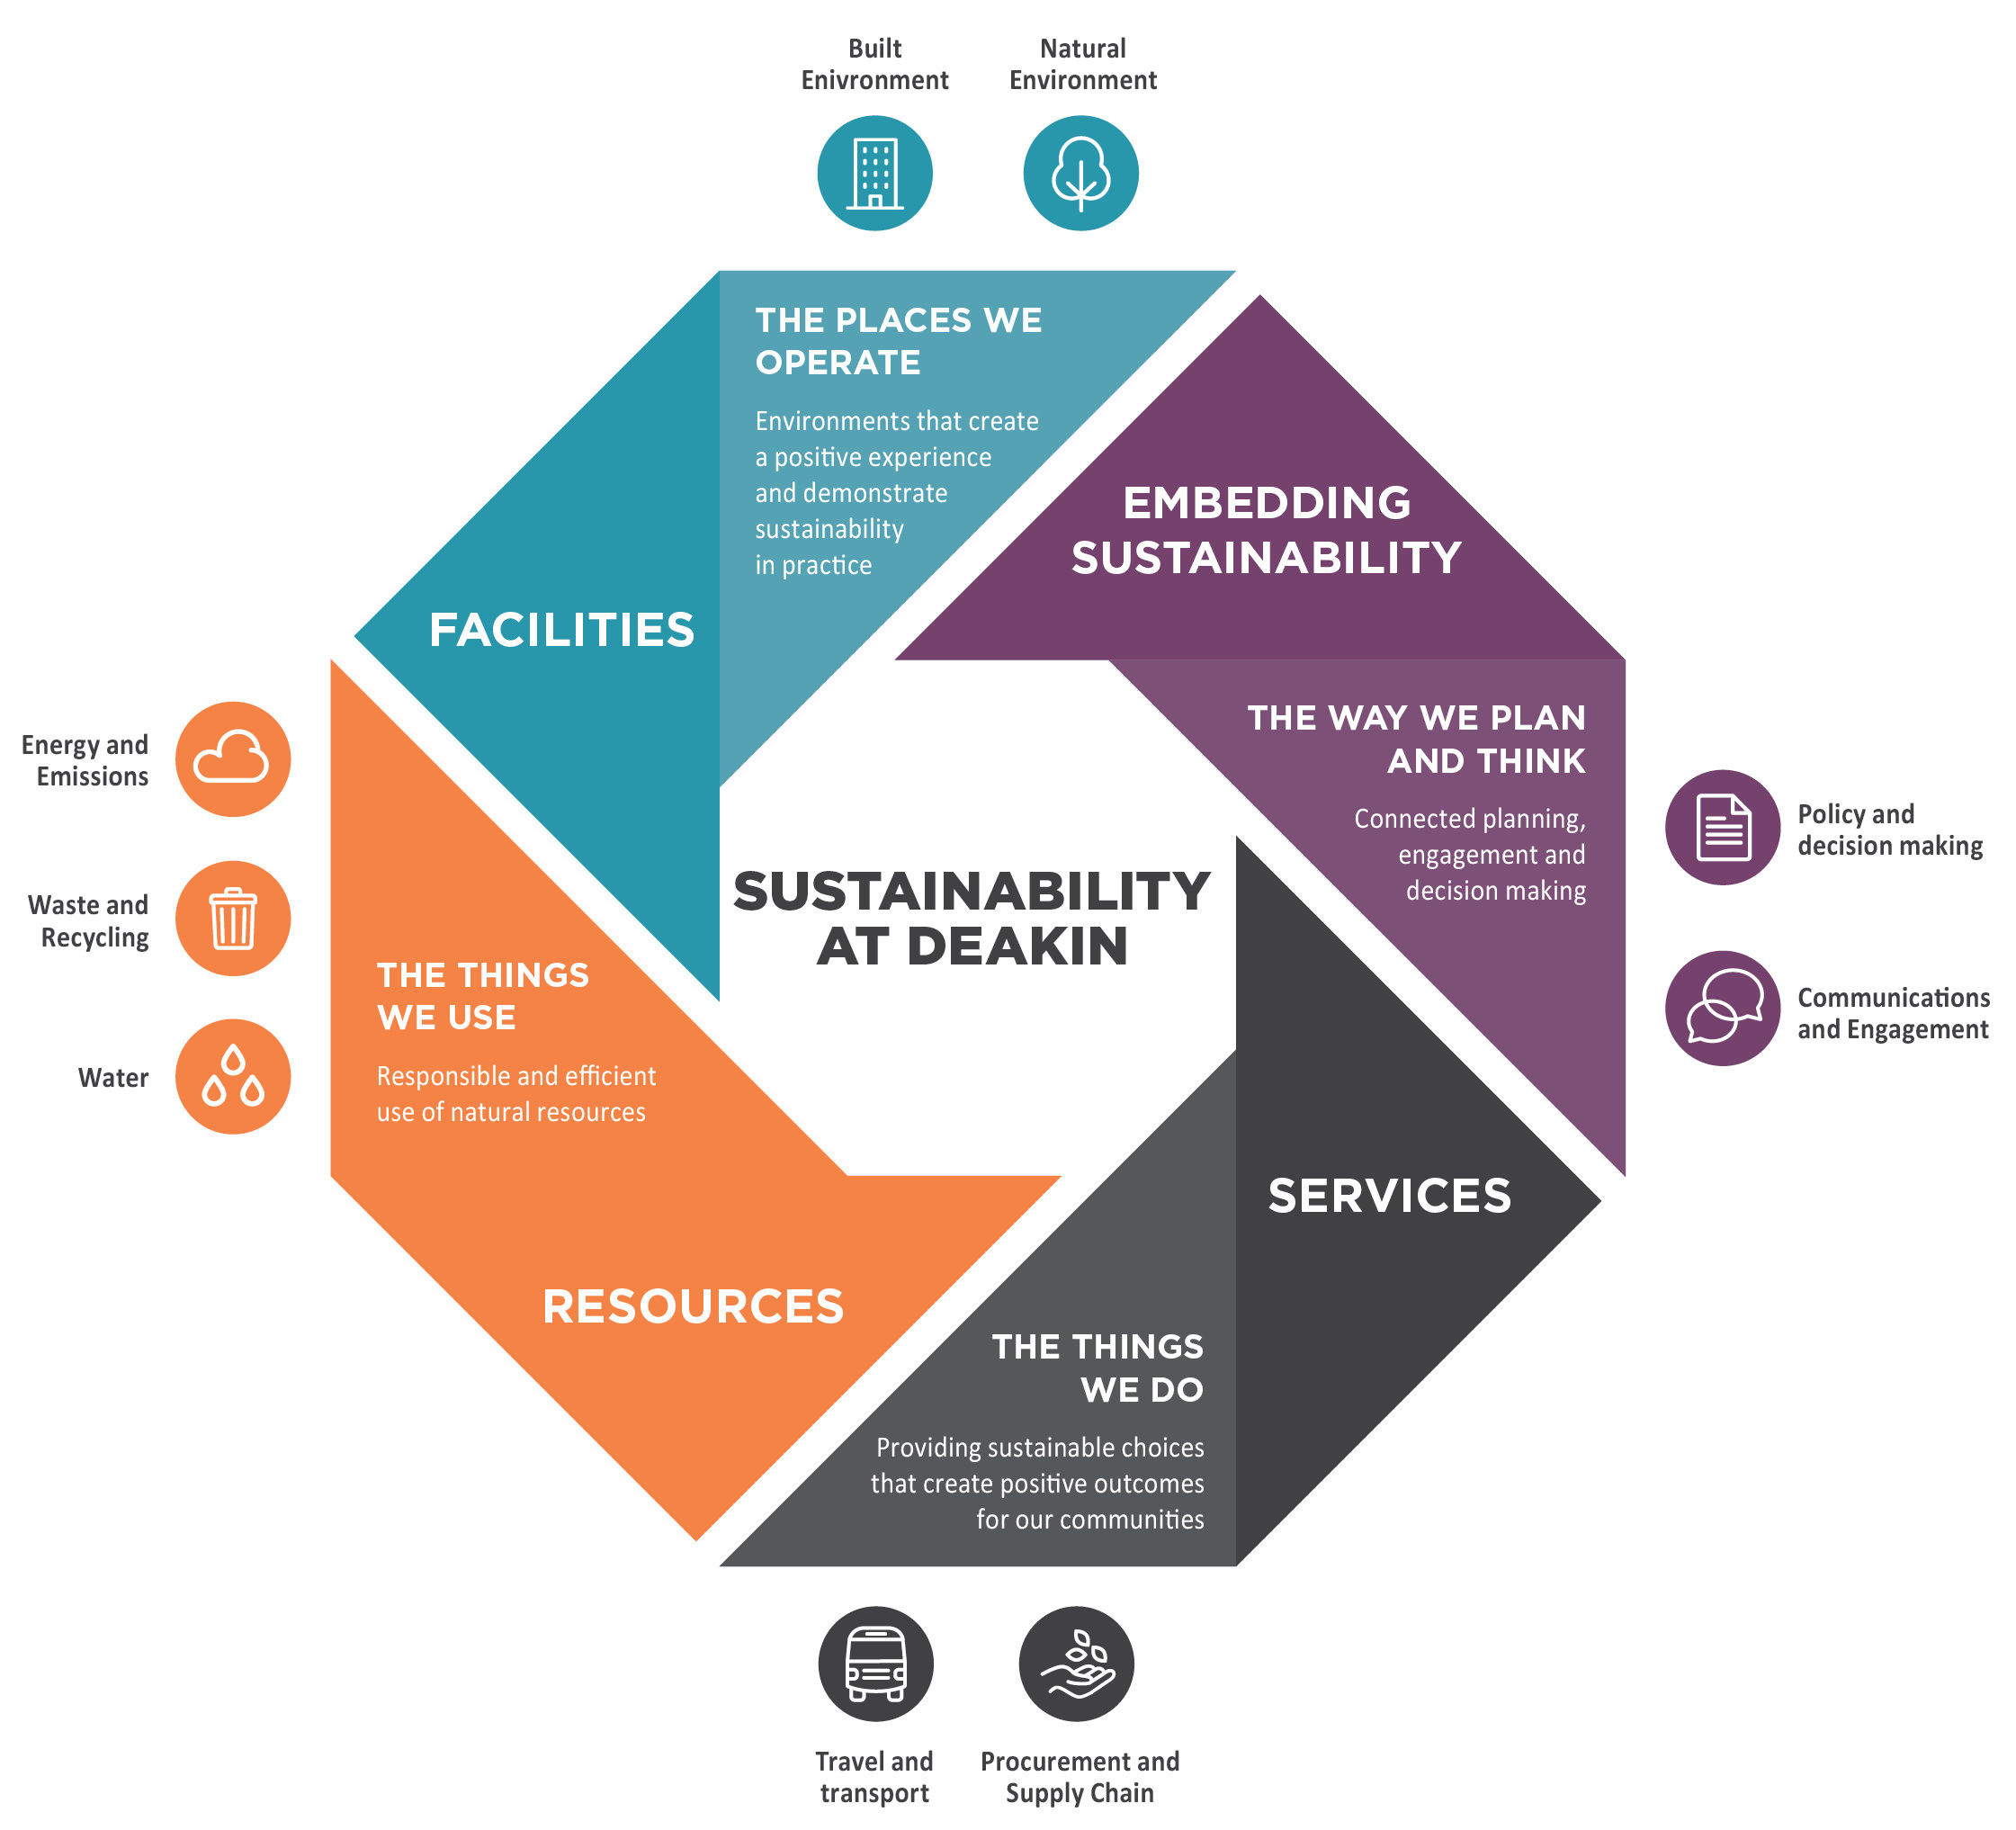 Sustainability at Deakin